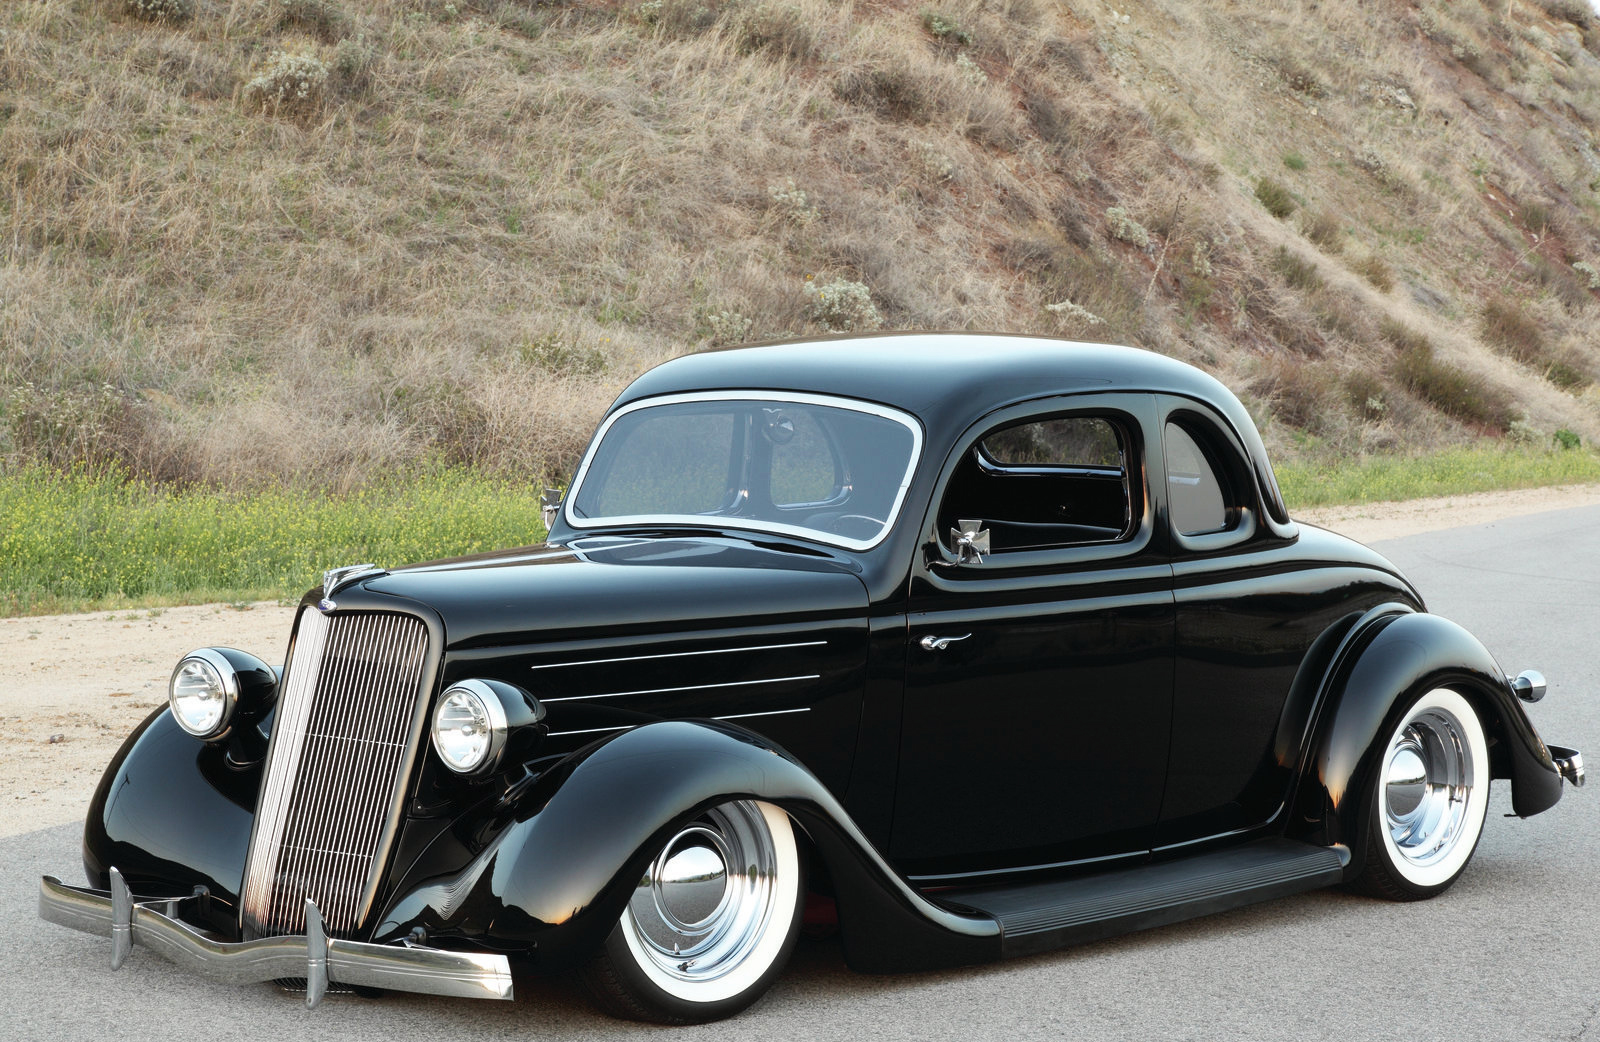 ... | Wallpaper Abyss Everything Ford Vehicles 1935 Ford Coupe 292158